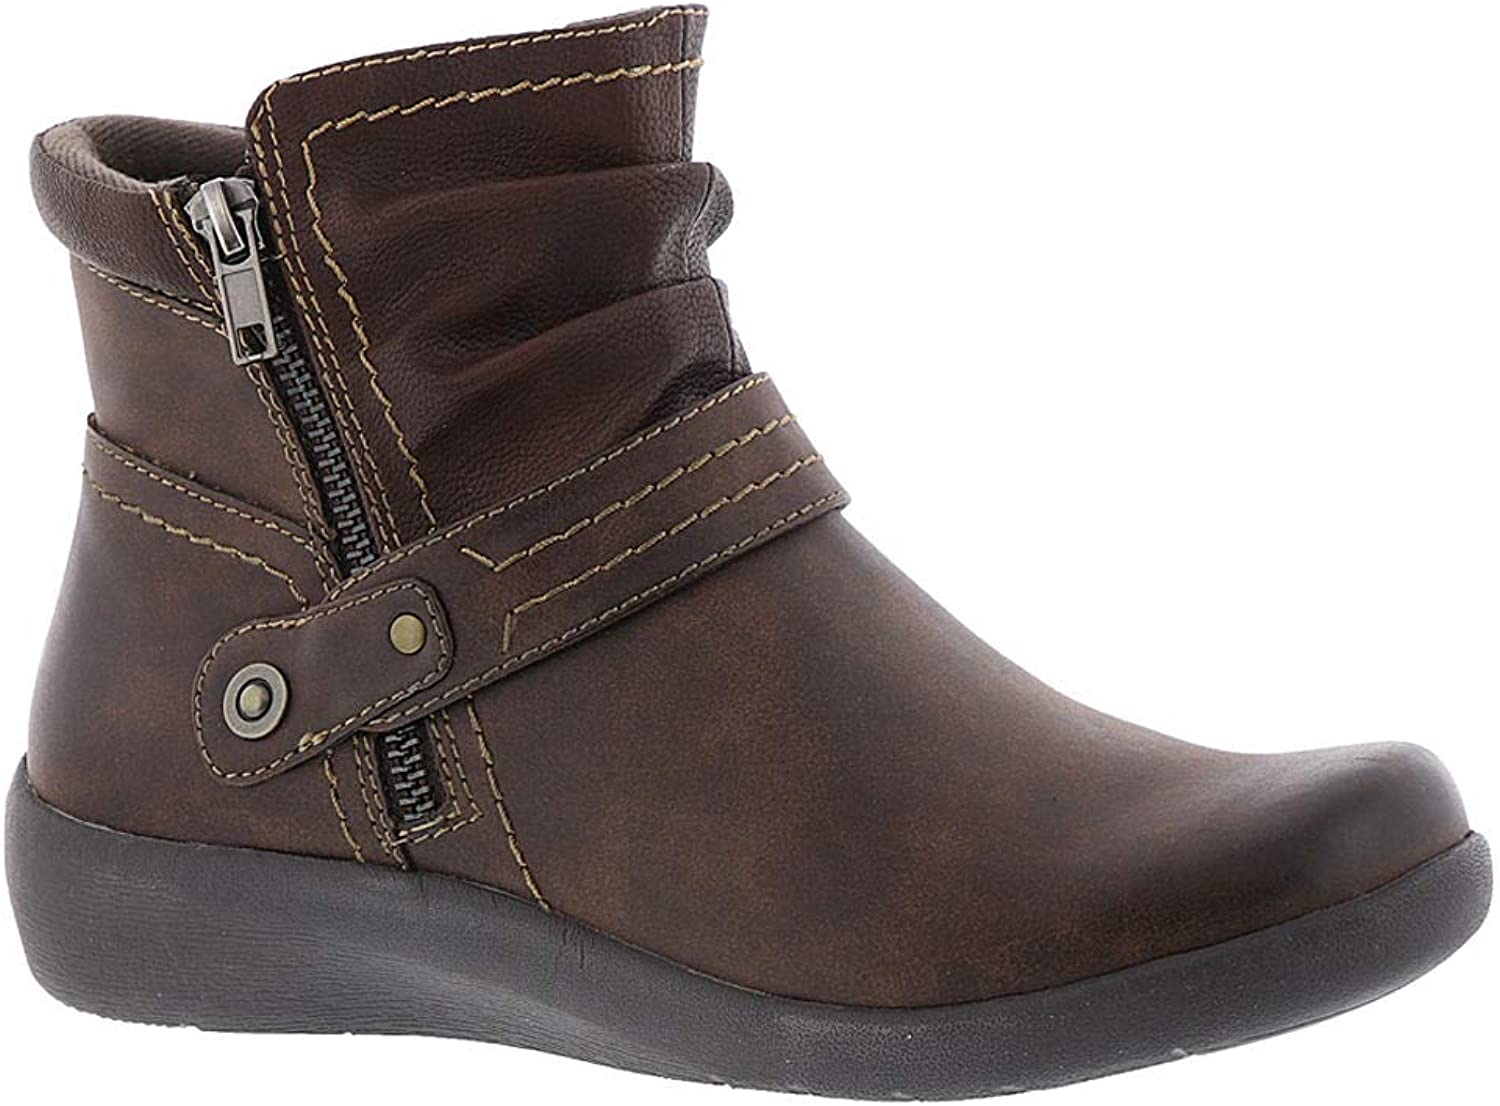 Earth Origins Lilly Women's Boot 7 2A(N) US Chestnut-Chocolate